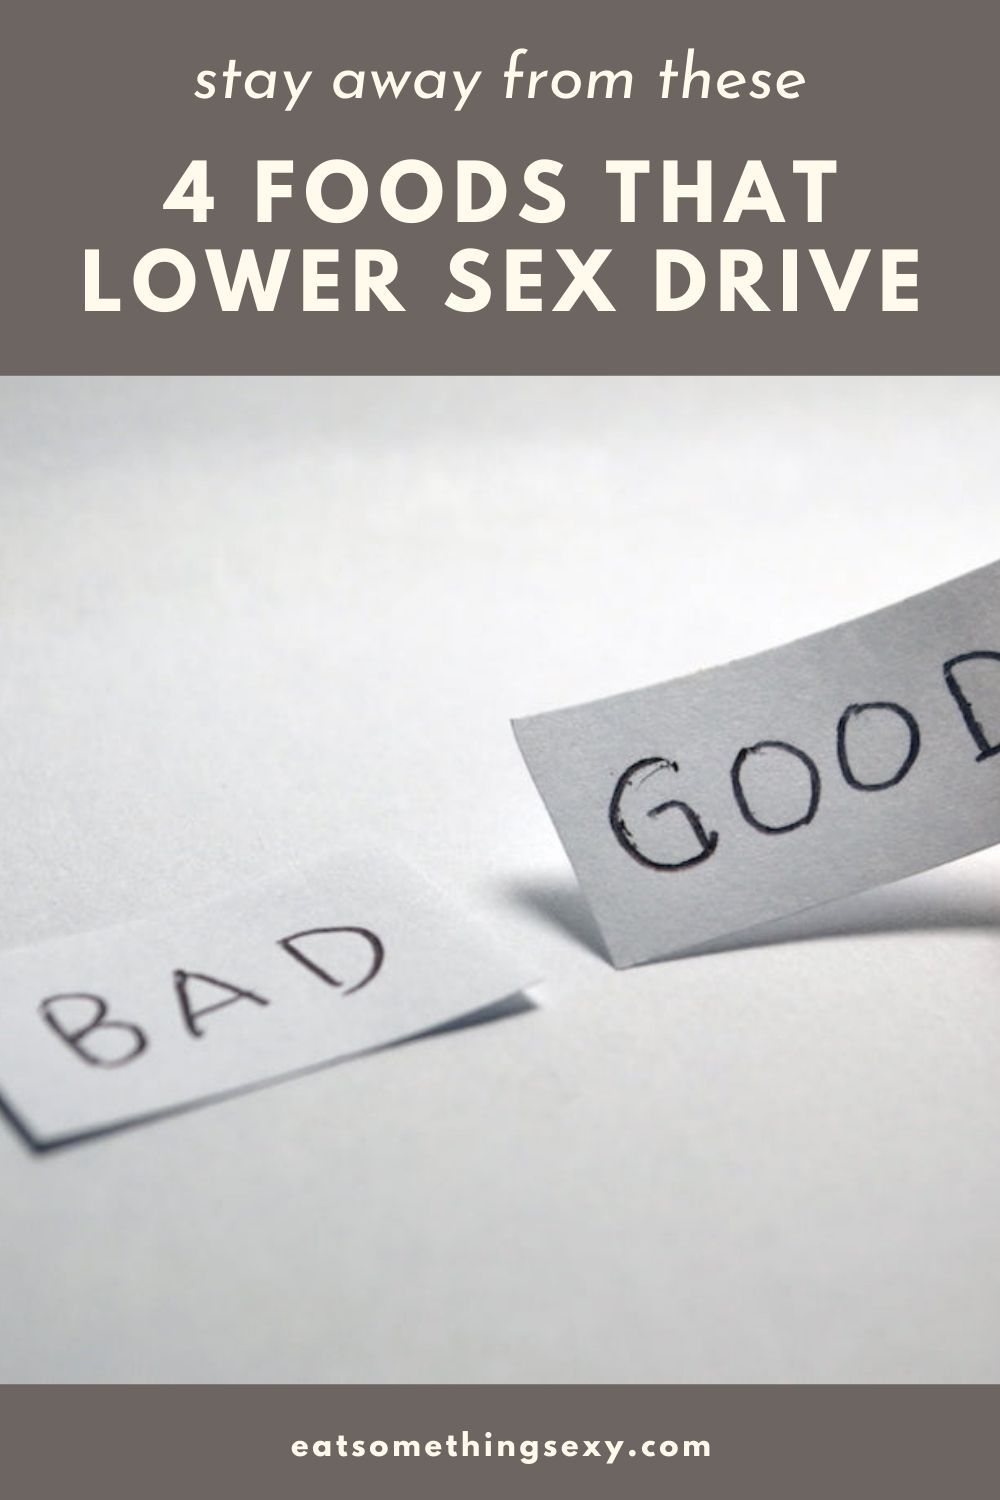 foods that lower sex drive graphic